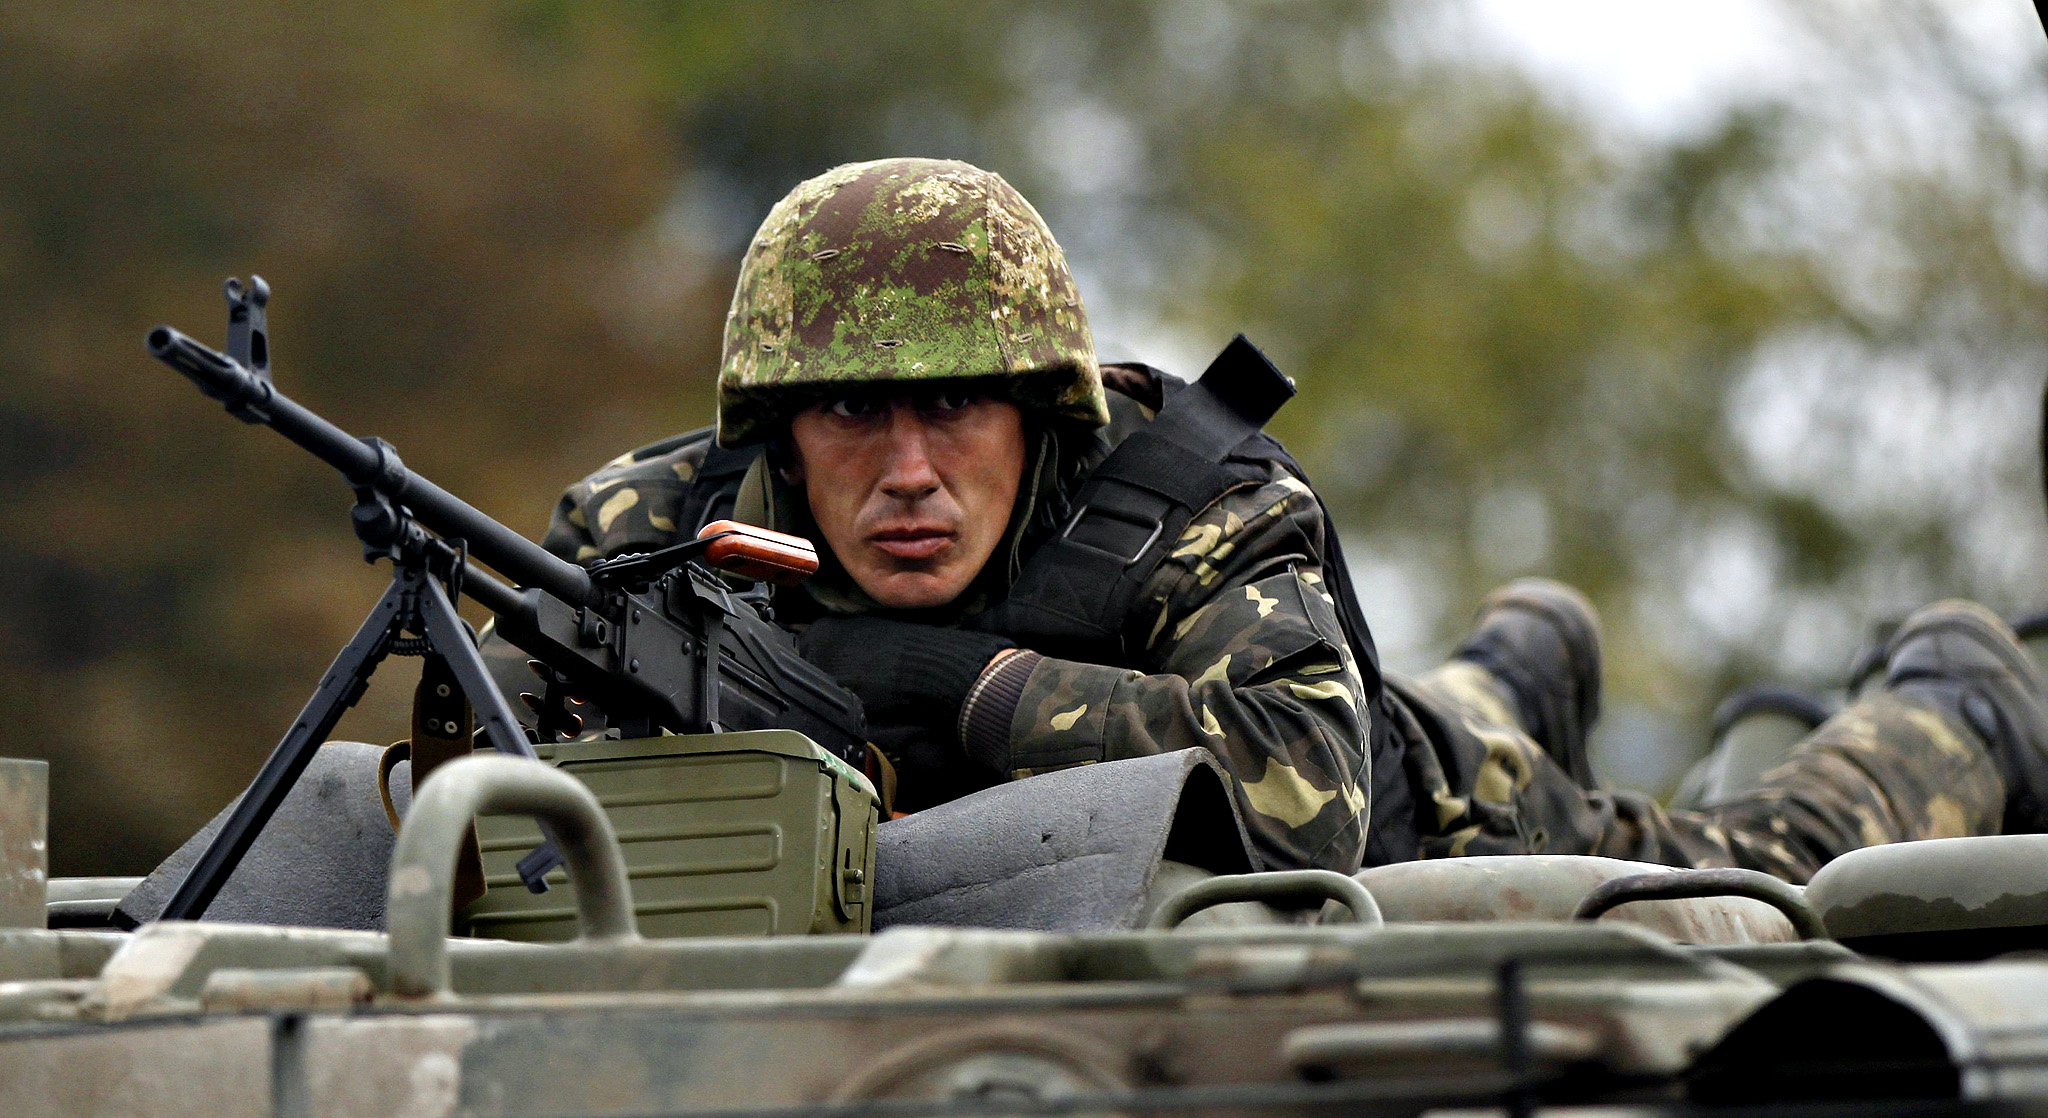 A Ukrainian serviceman rides on an armoured vehicle near the eastern Ukrainian town of Debaltseve, September 23, 2014.